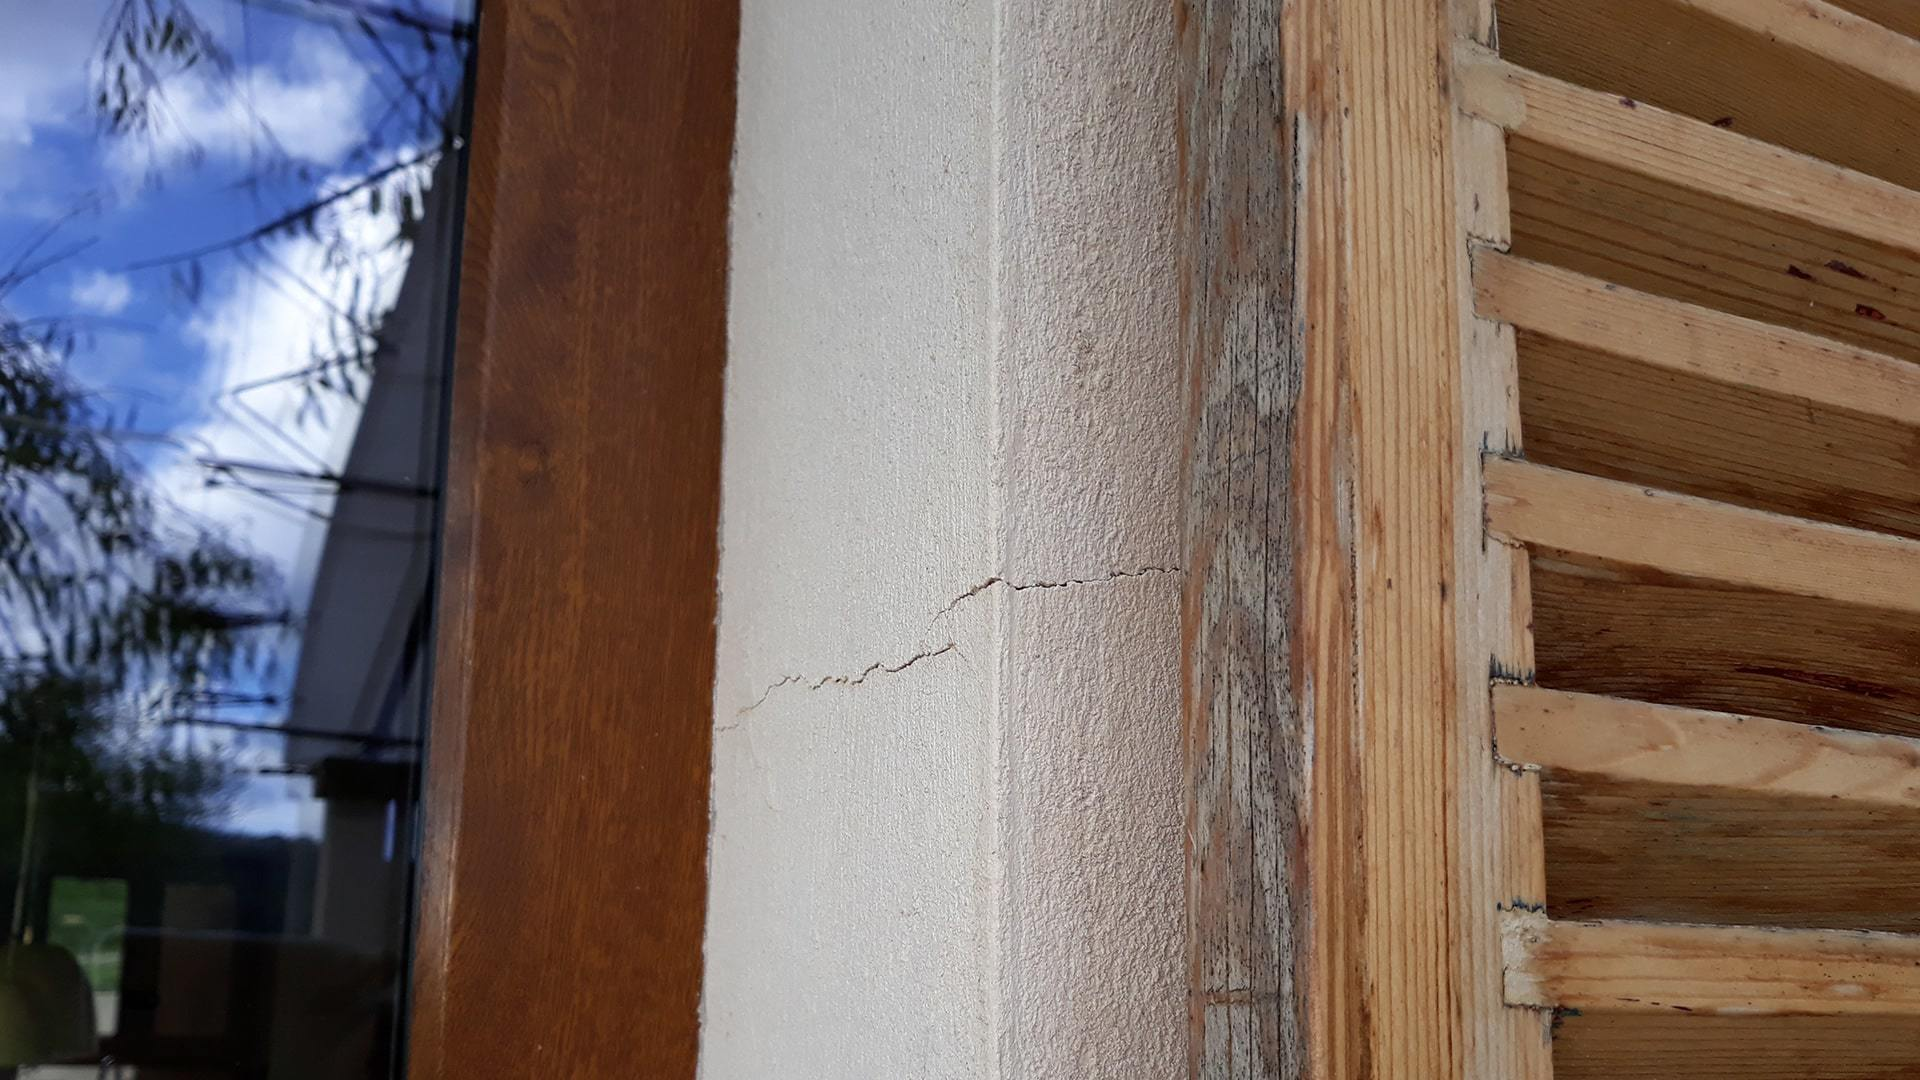 Cracks window prepping your home for winter mallorca min